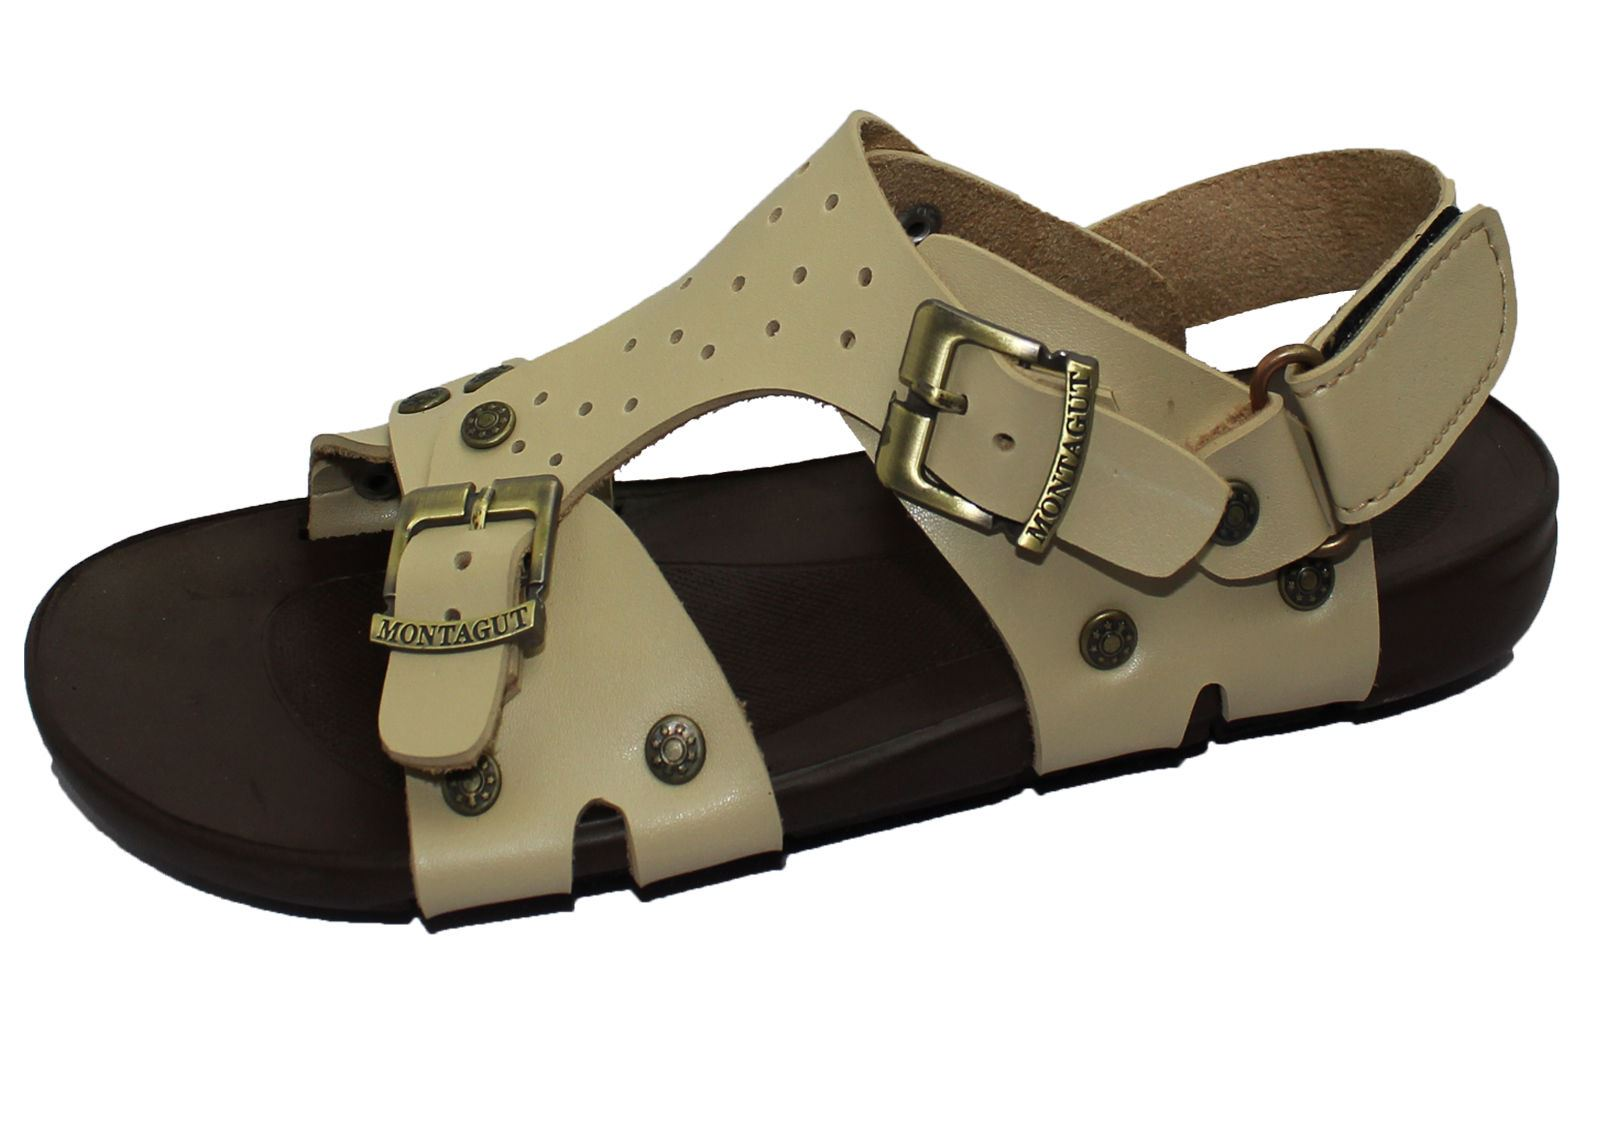 sofltappreciate.tk provides boys gladiator sandals items from China top selected Sandals, Shoes & Accessories suppliers at wholesale prices with worldwide delivery. You can find gladiator sandal, Unisex boys gladiator sandals free shipping, boys gladiator sandals and view 10 boys gladiator sandals reviews to help you choose.